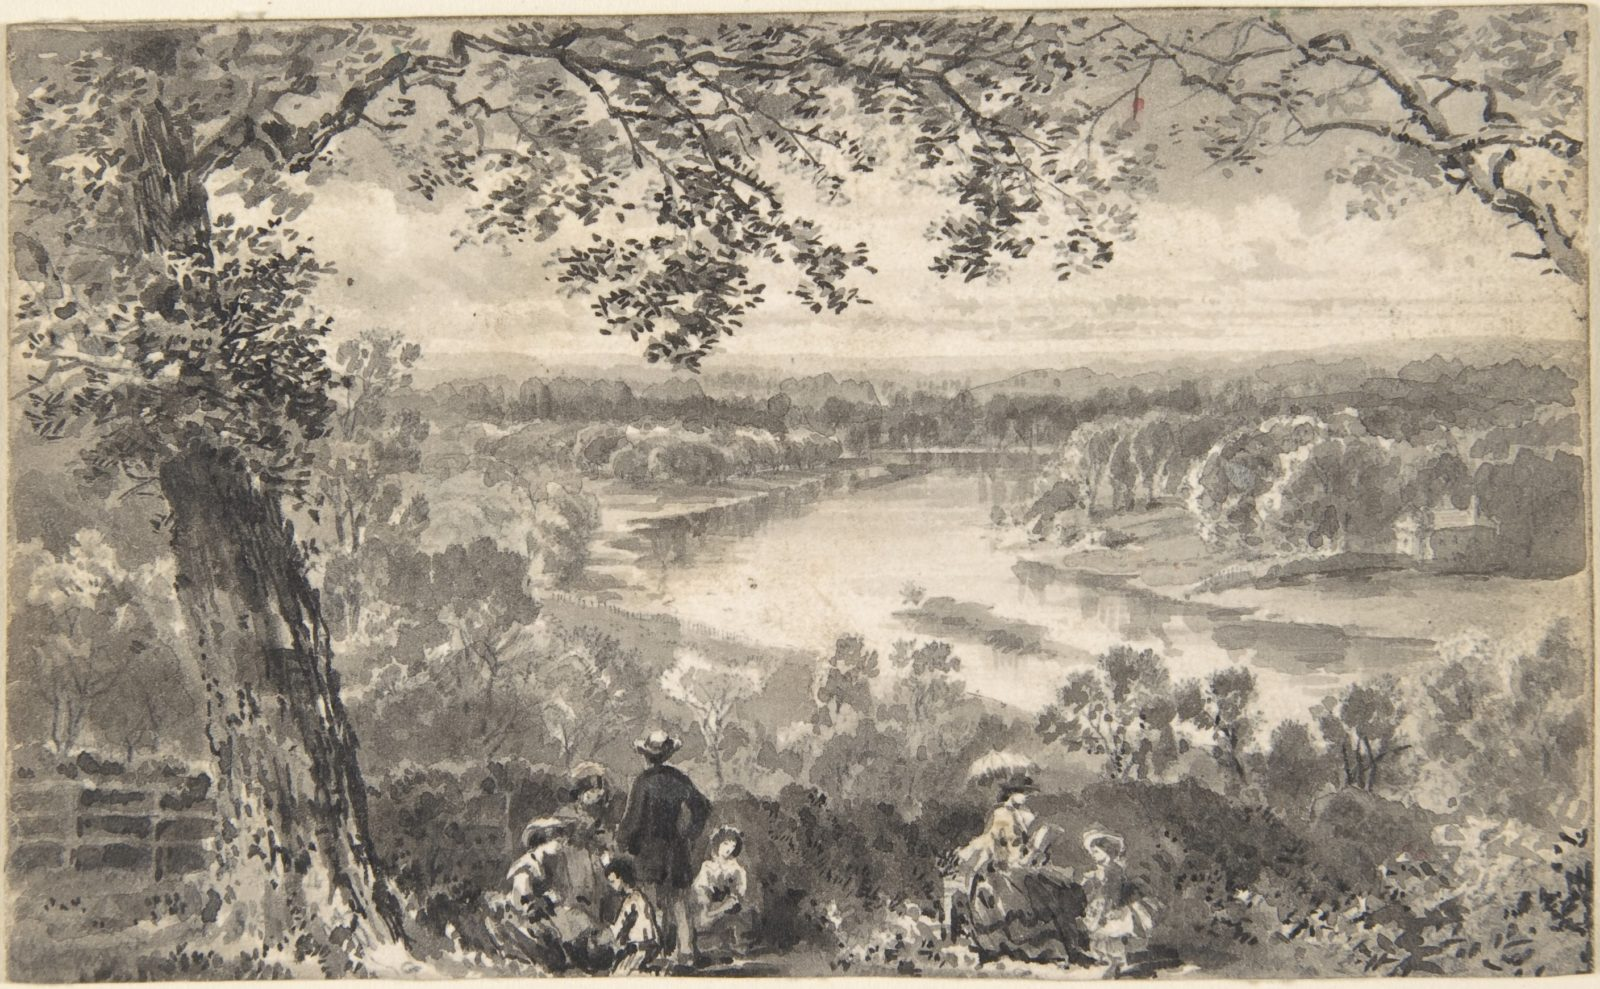 View of the Thames with Figures in Foreground